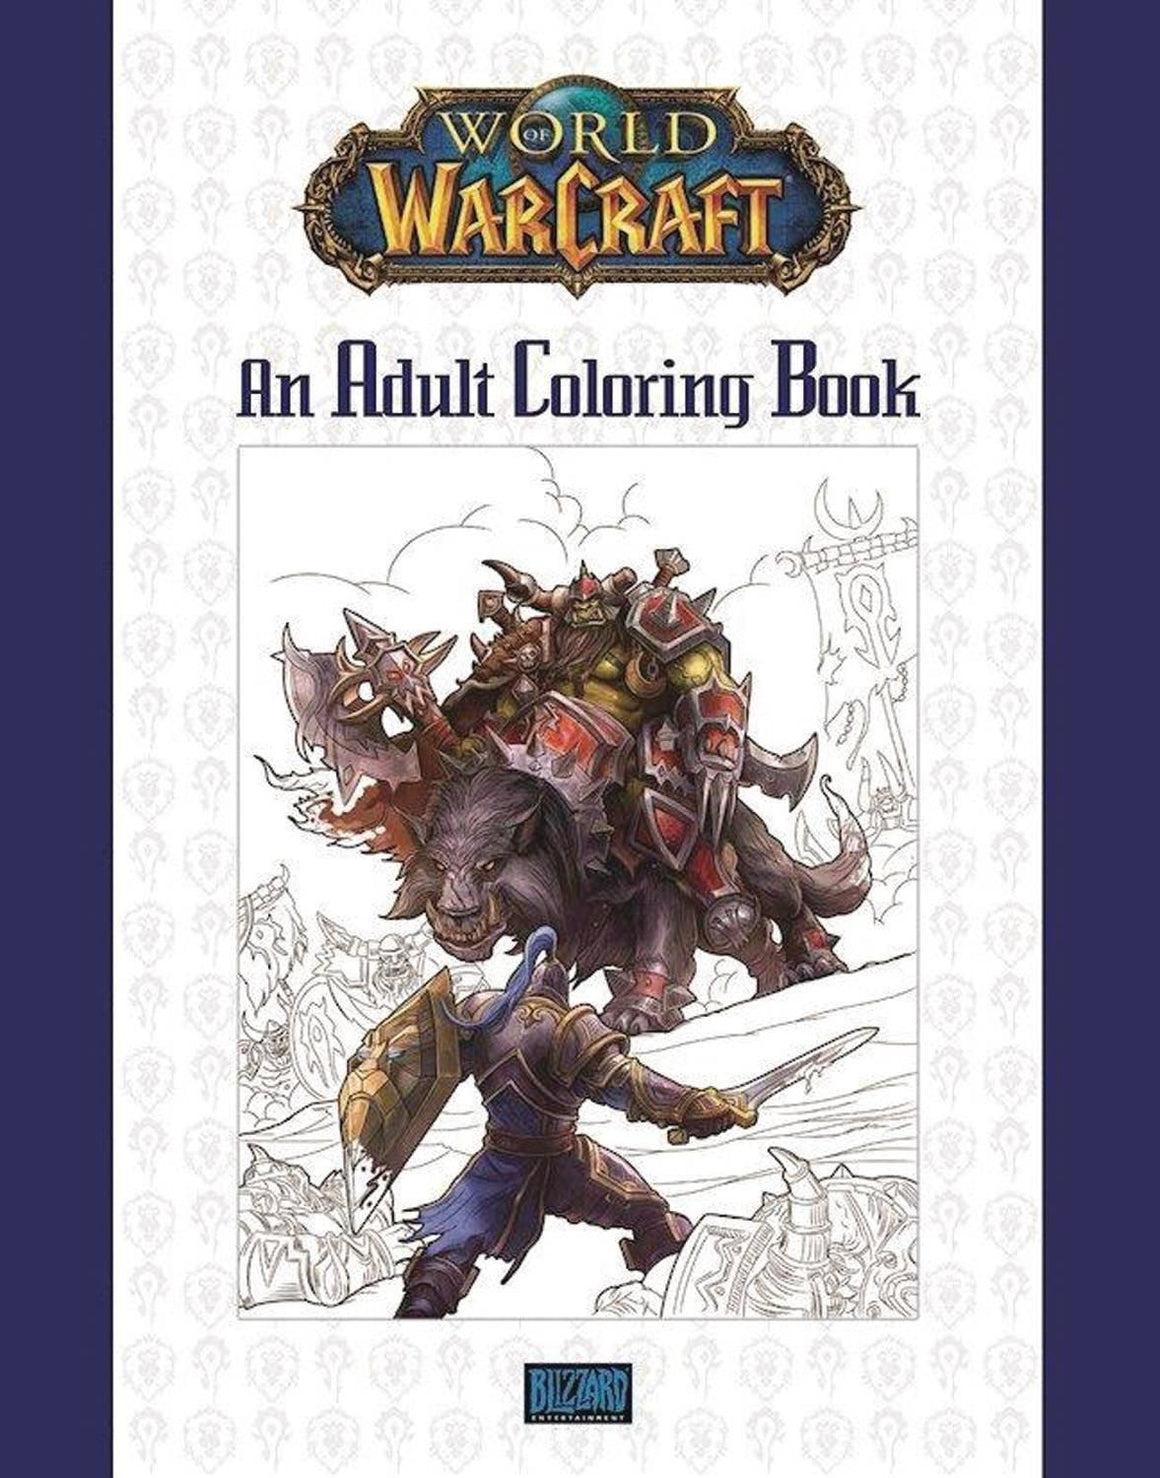 WORLD OF WARCRAFT ADULT COLORING BOOK SC